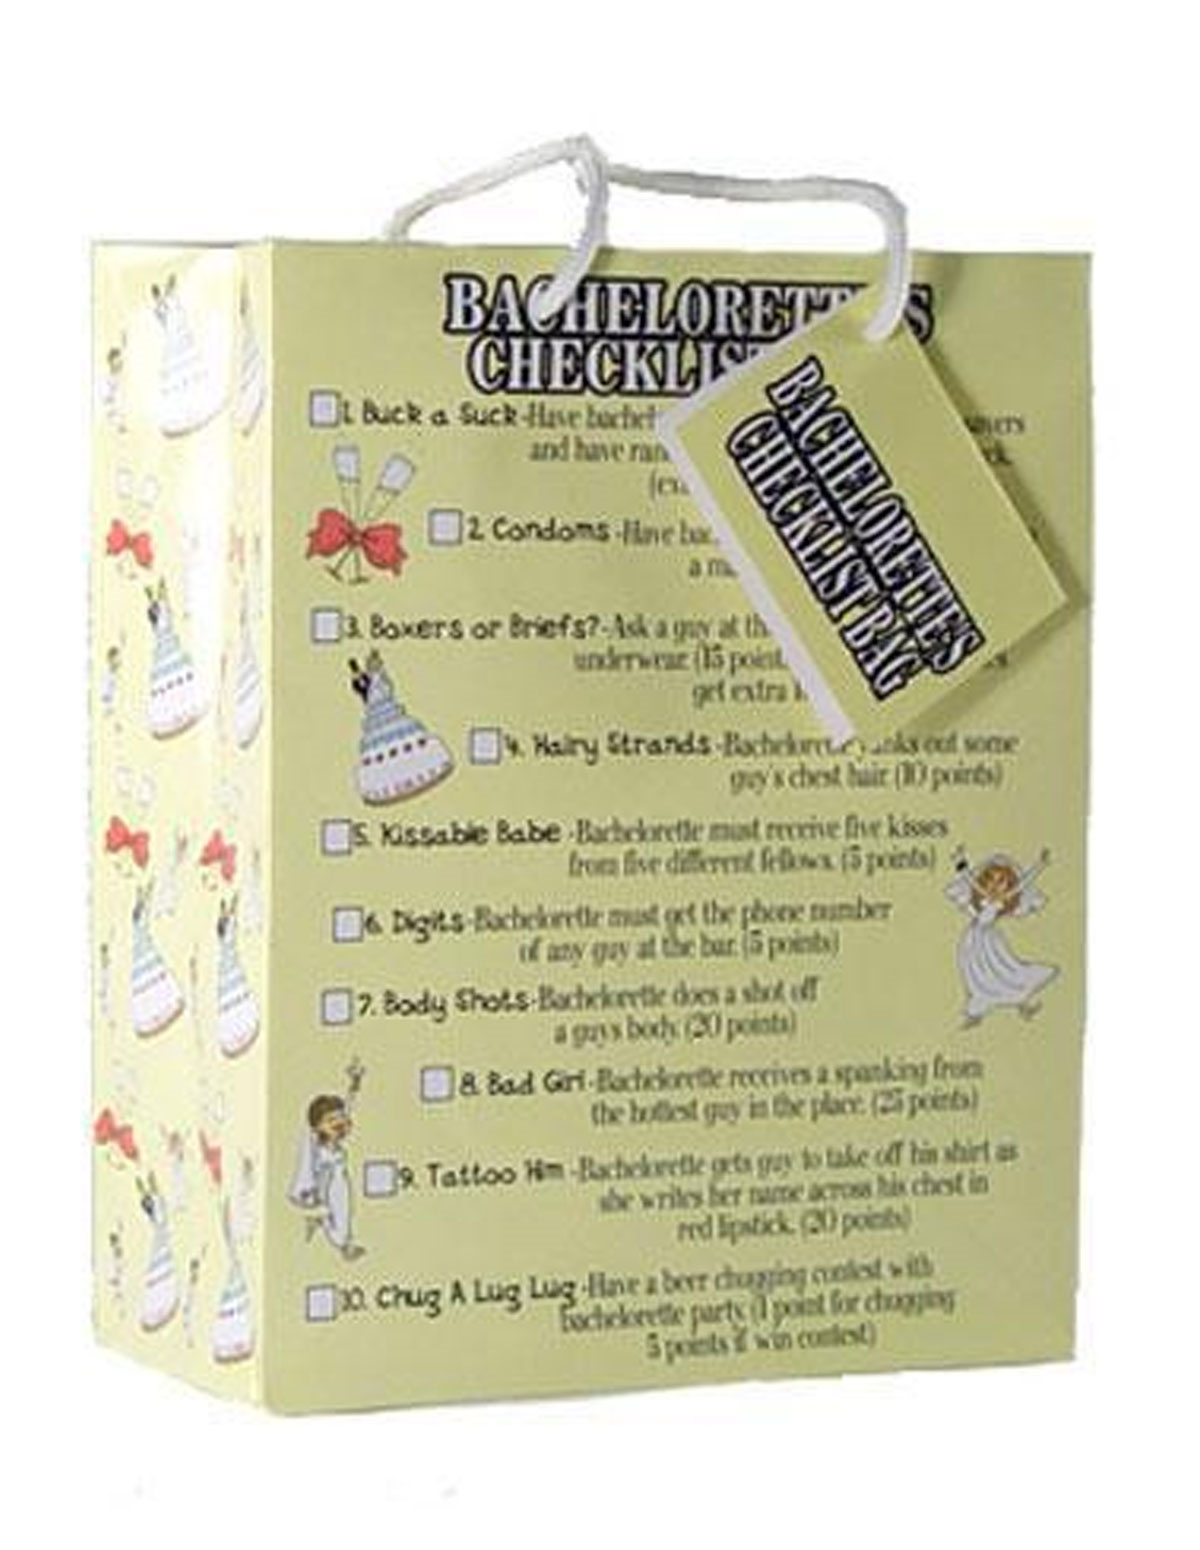 Bachelorette Checklist Bag